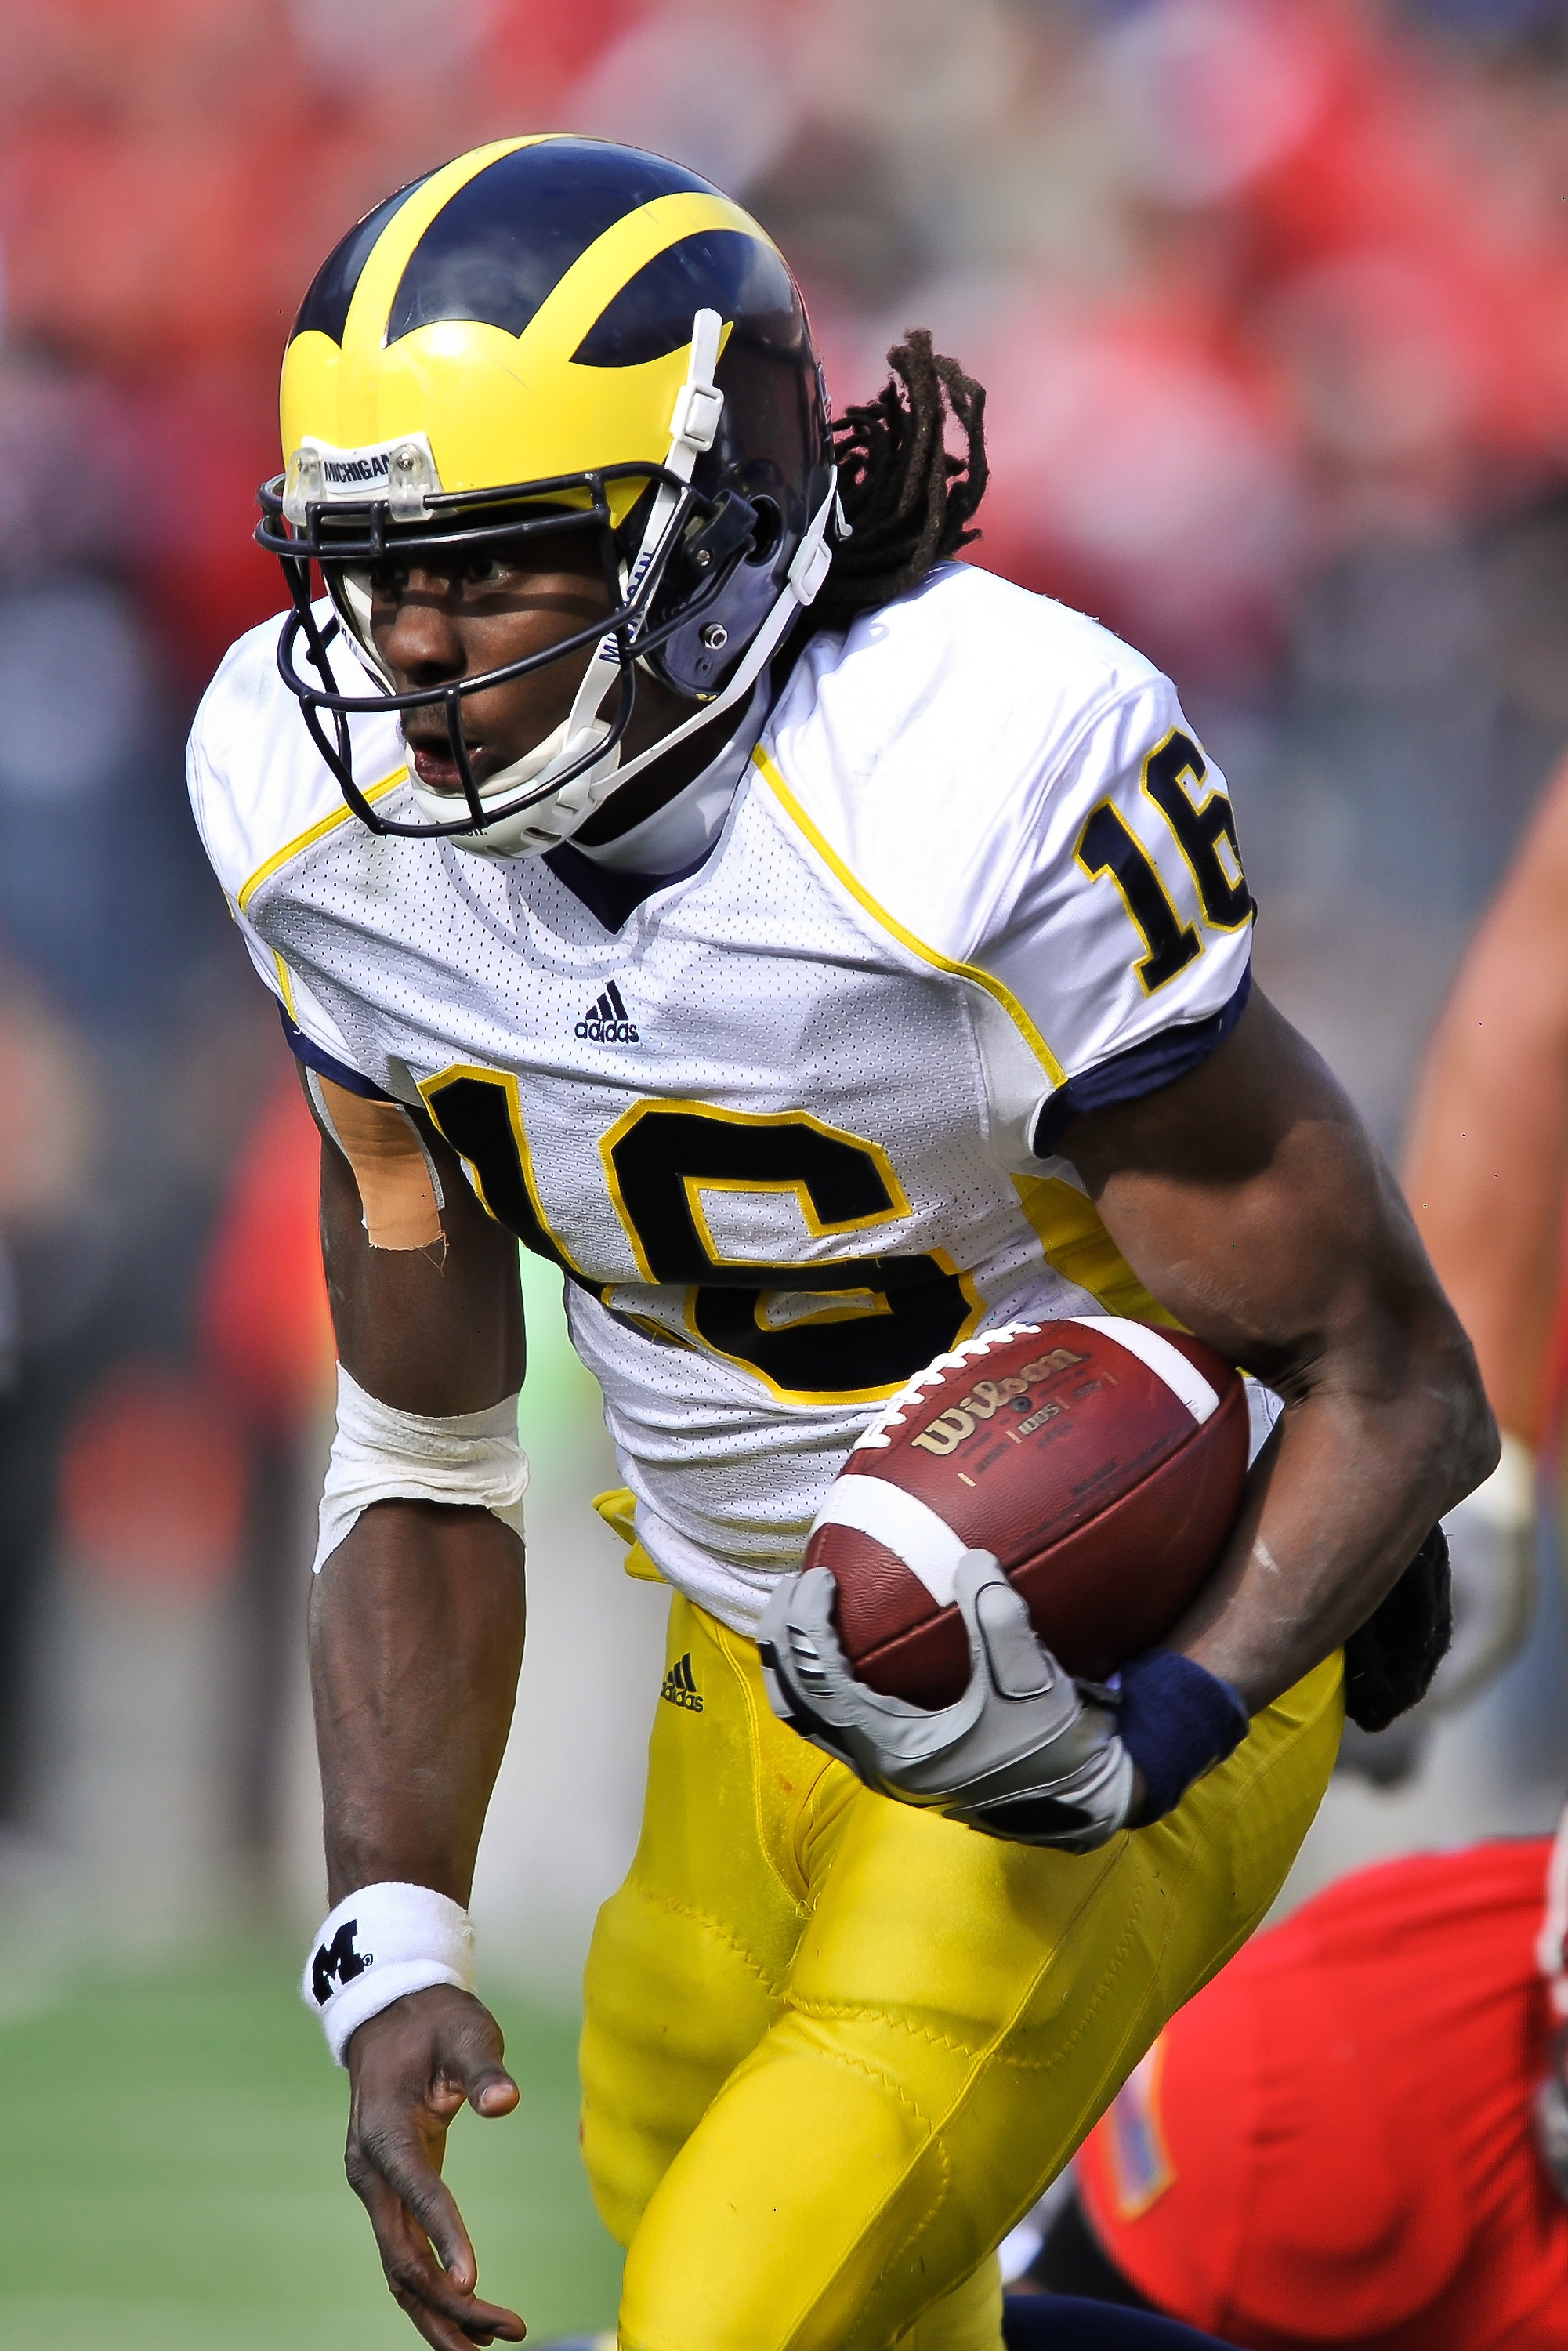 Denard busted out onto the scene this year with his amazing ability to escape the pocket and making good decisions as a QB